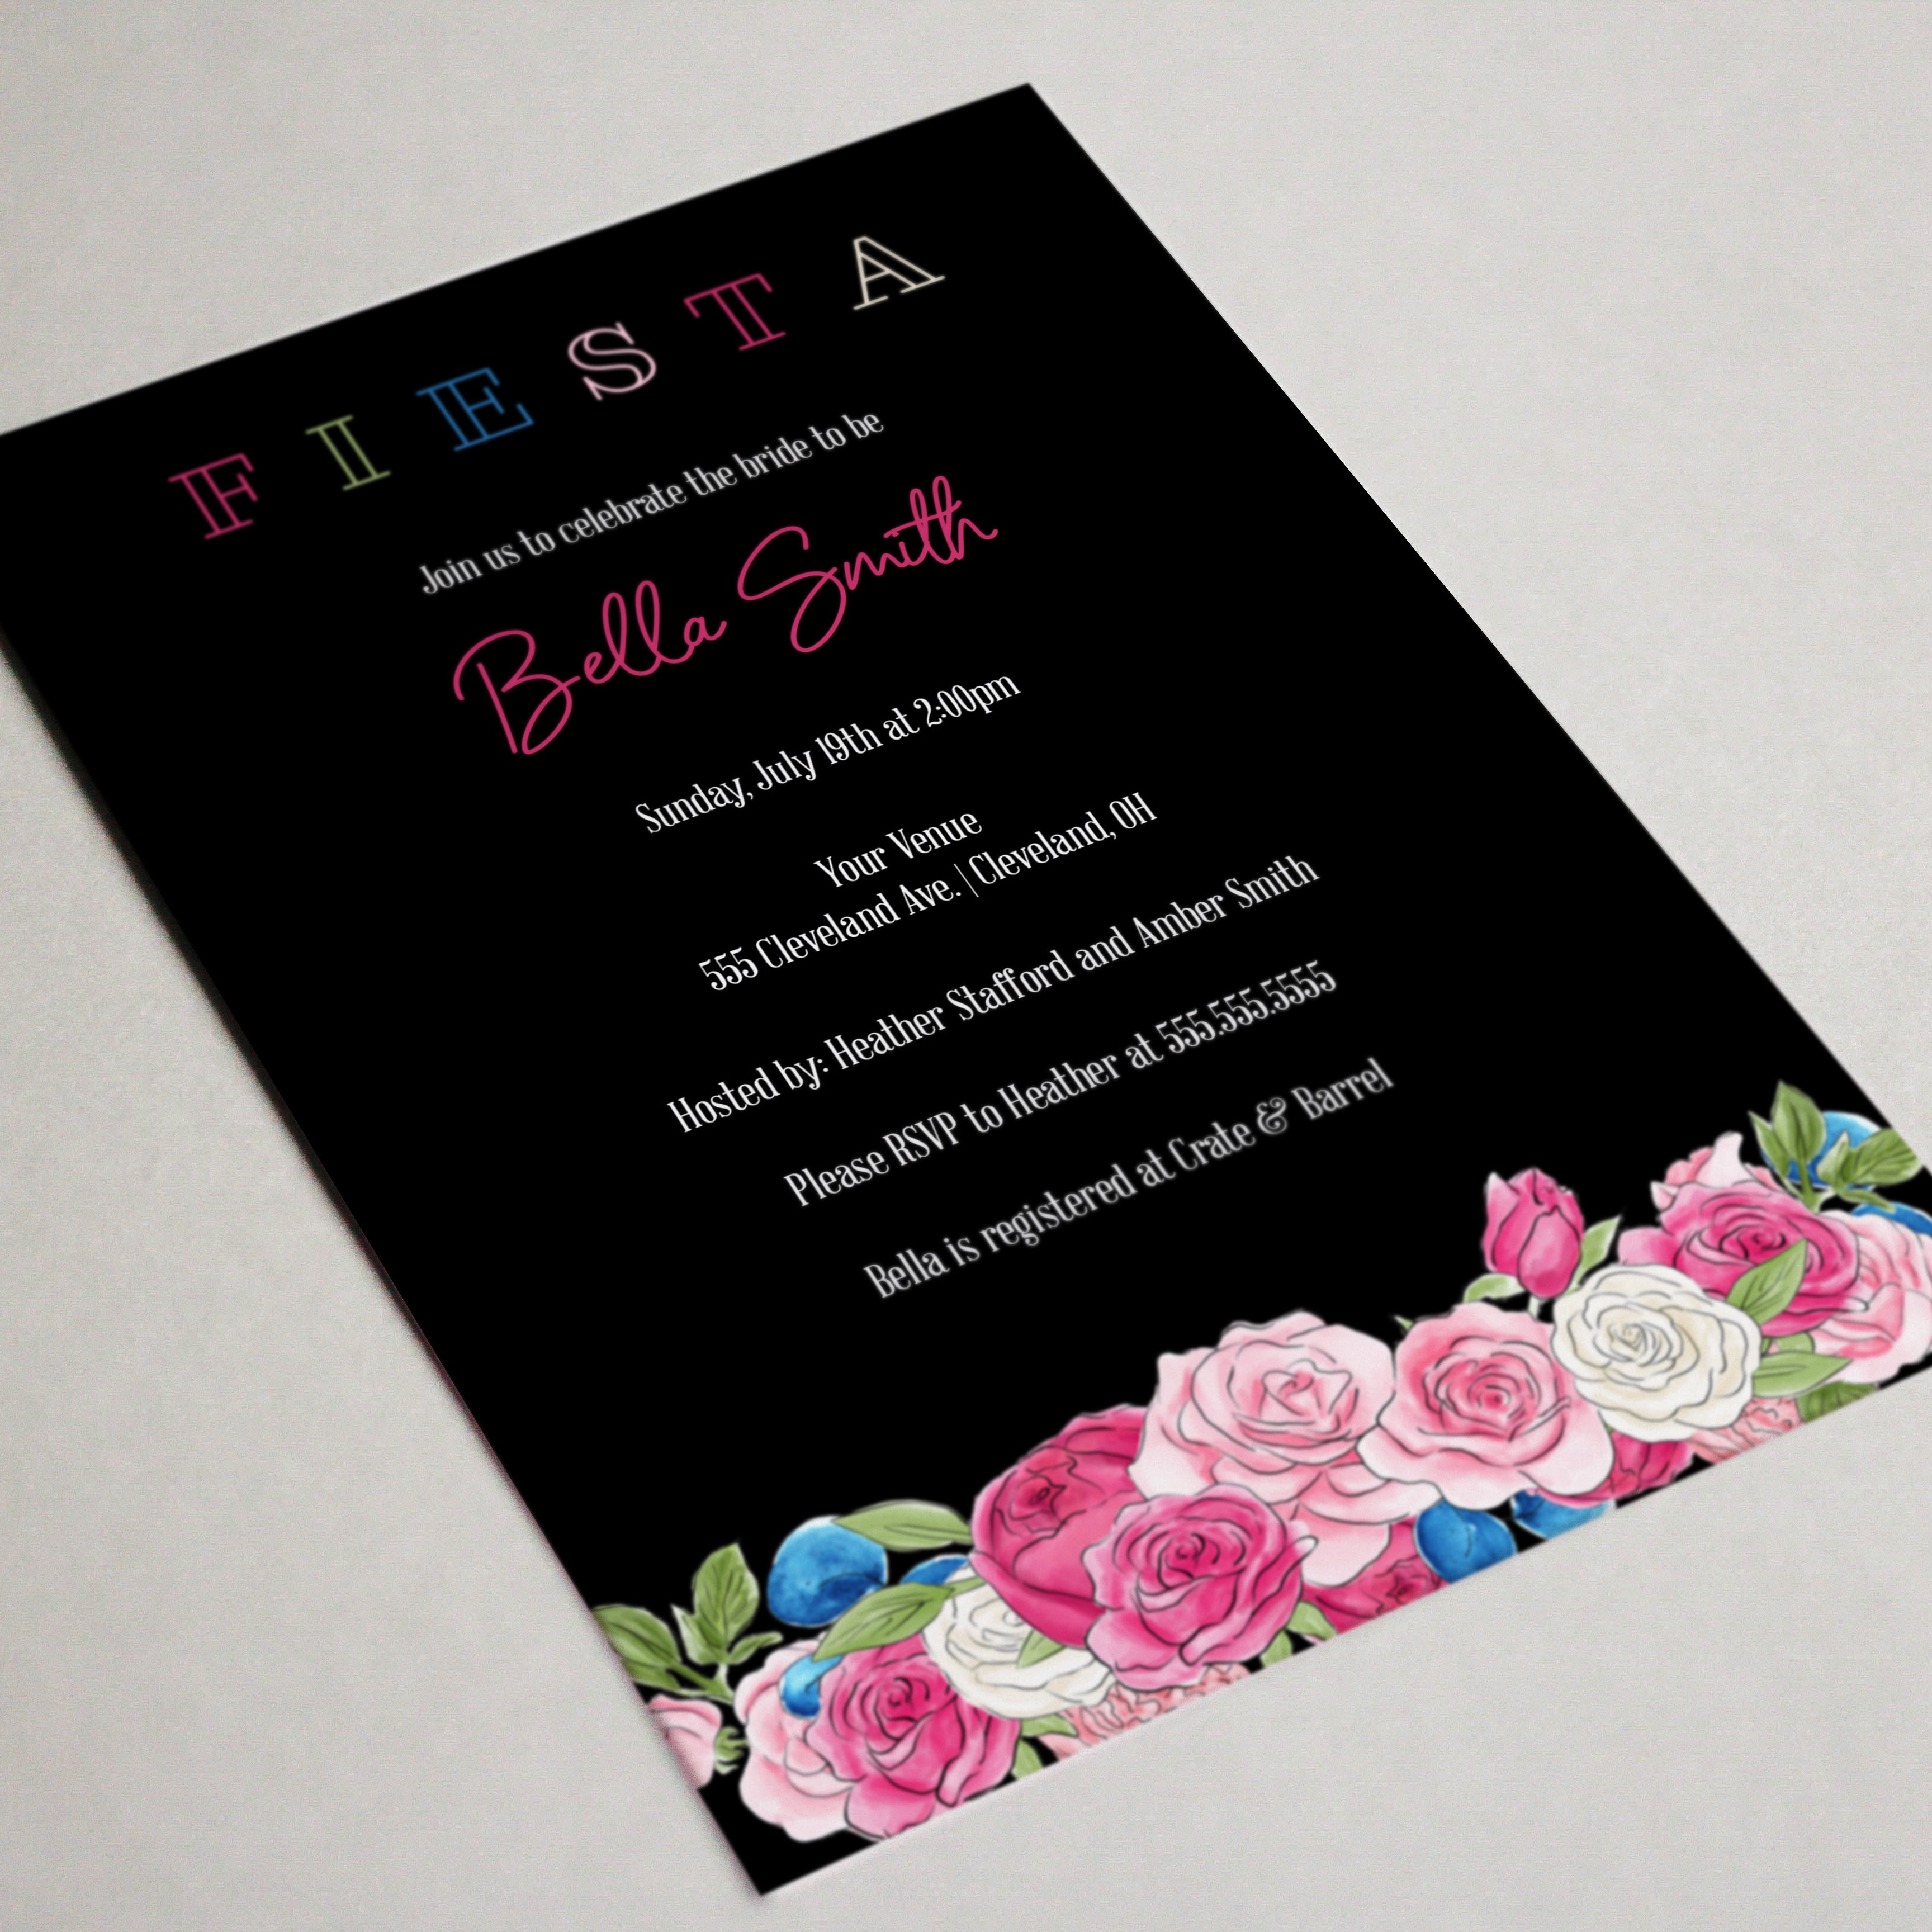 Fiesta Rose Bridal Shower Invitation - Blú Rose Designs